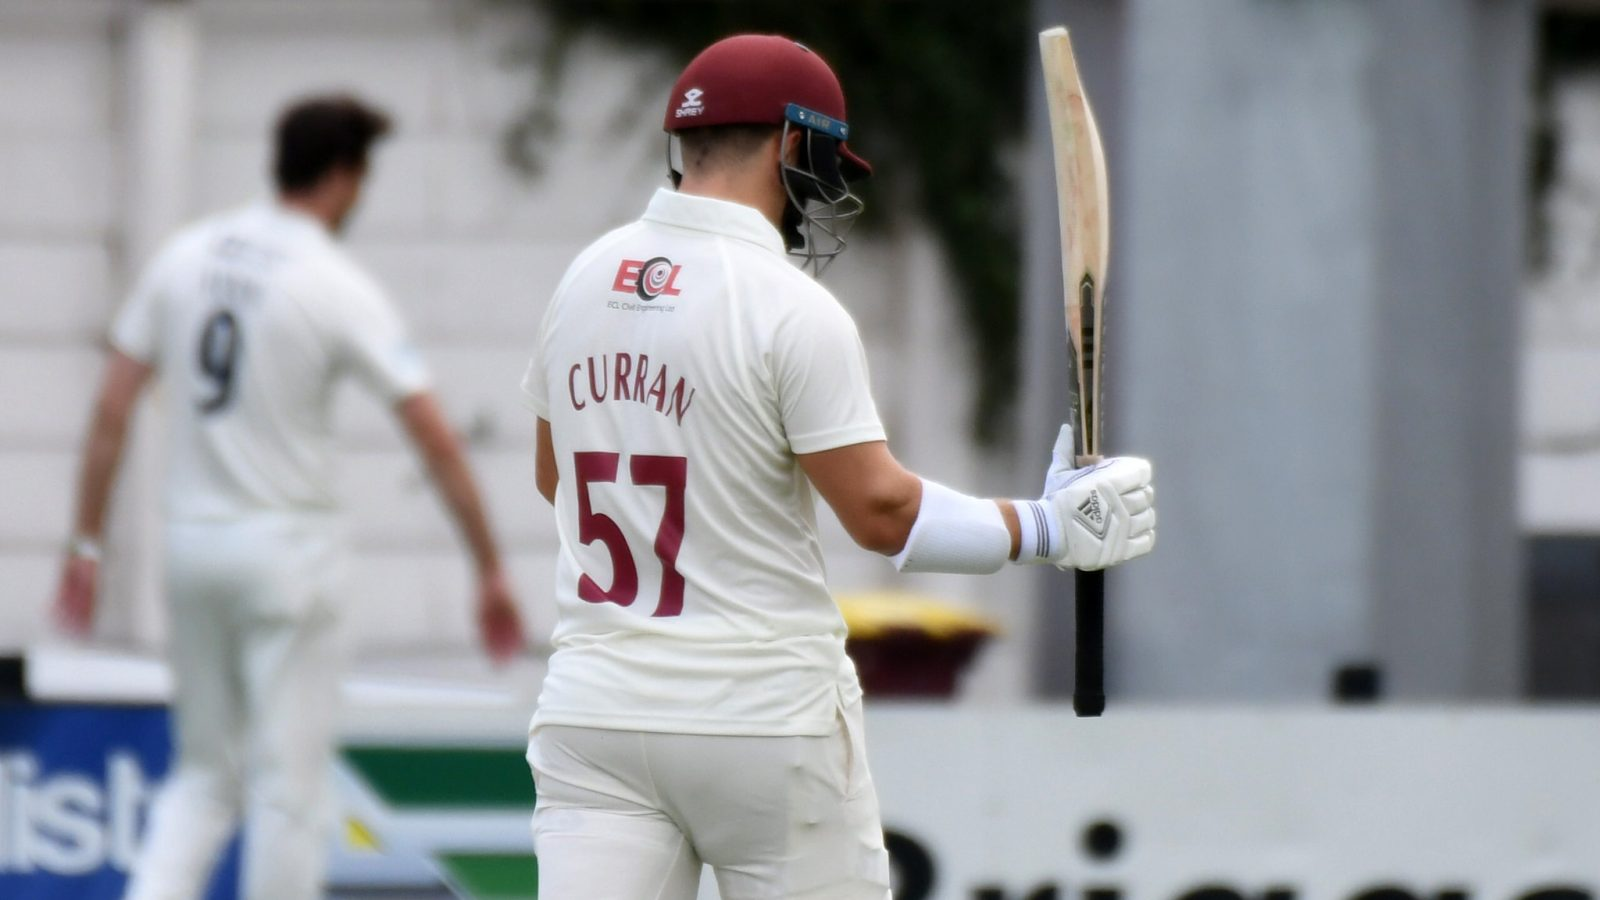 Curran, Vasconcelos, Zaib Post Scores Against Middlesex